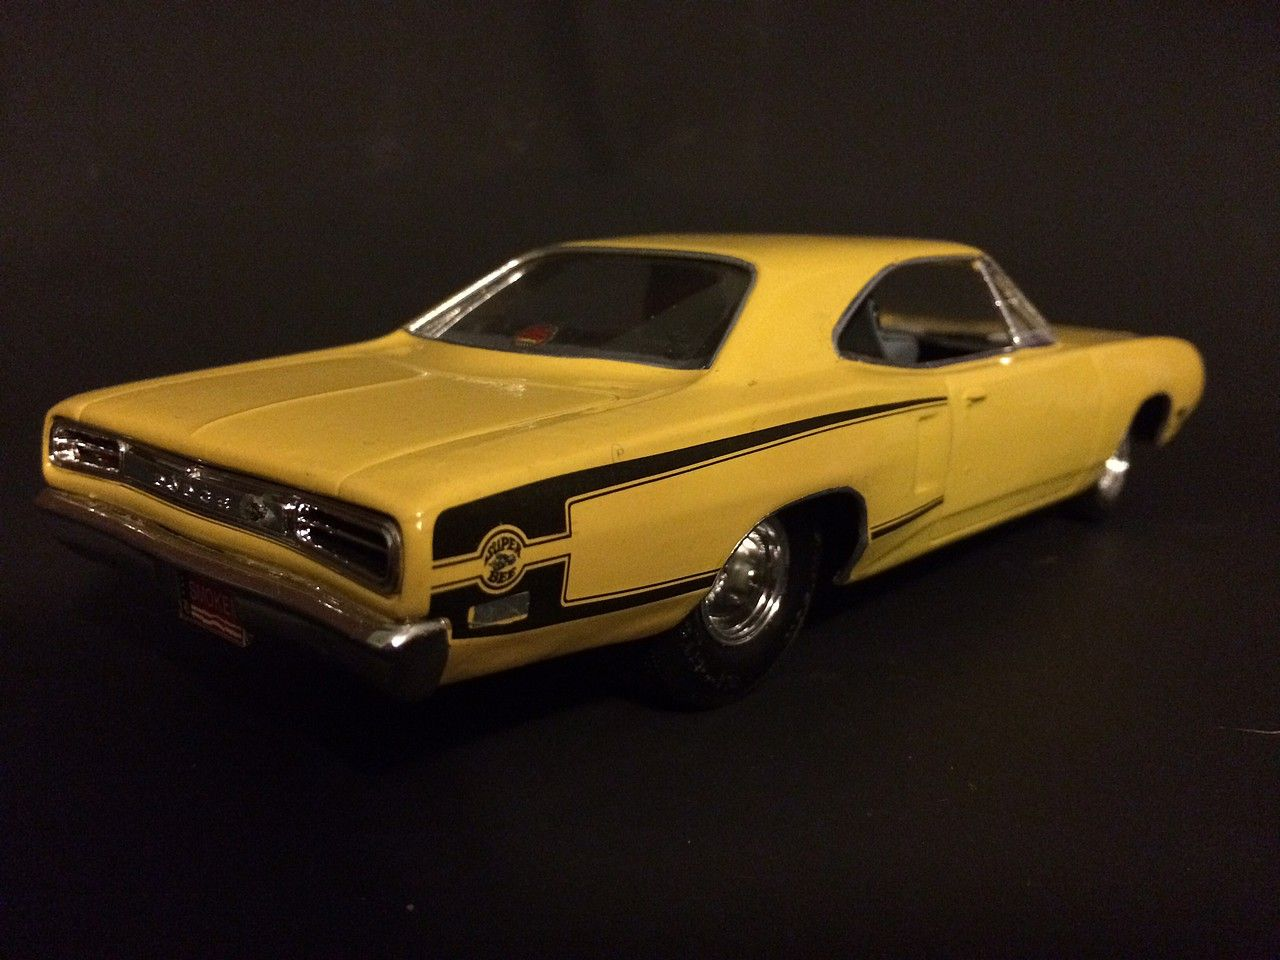 Gallery Pictures 1970 Dirty Donny Dodge Coronet Plastic Model